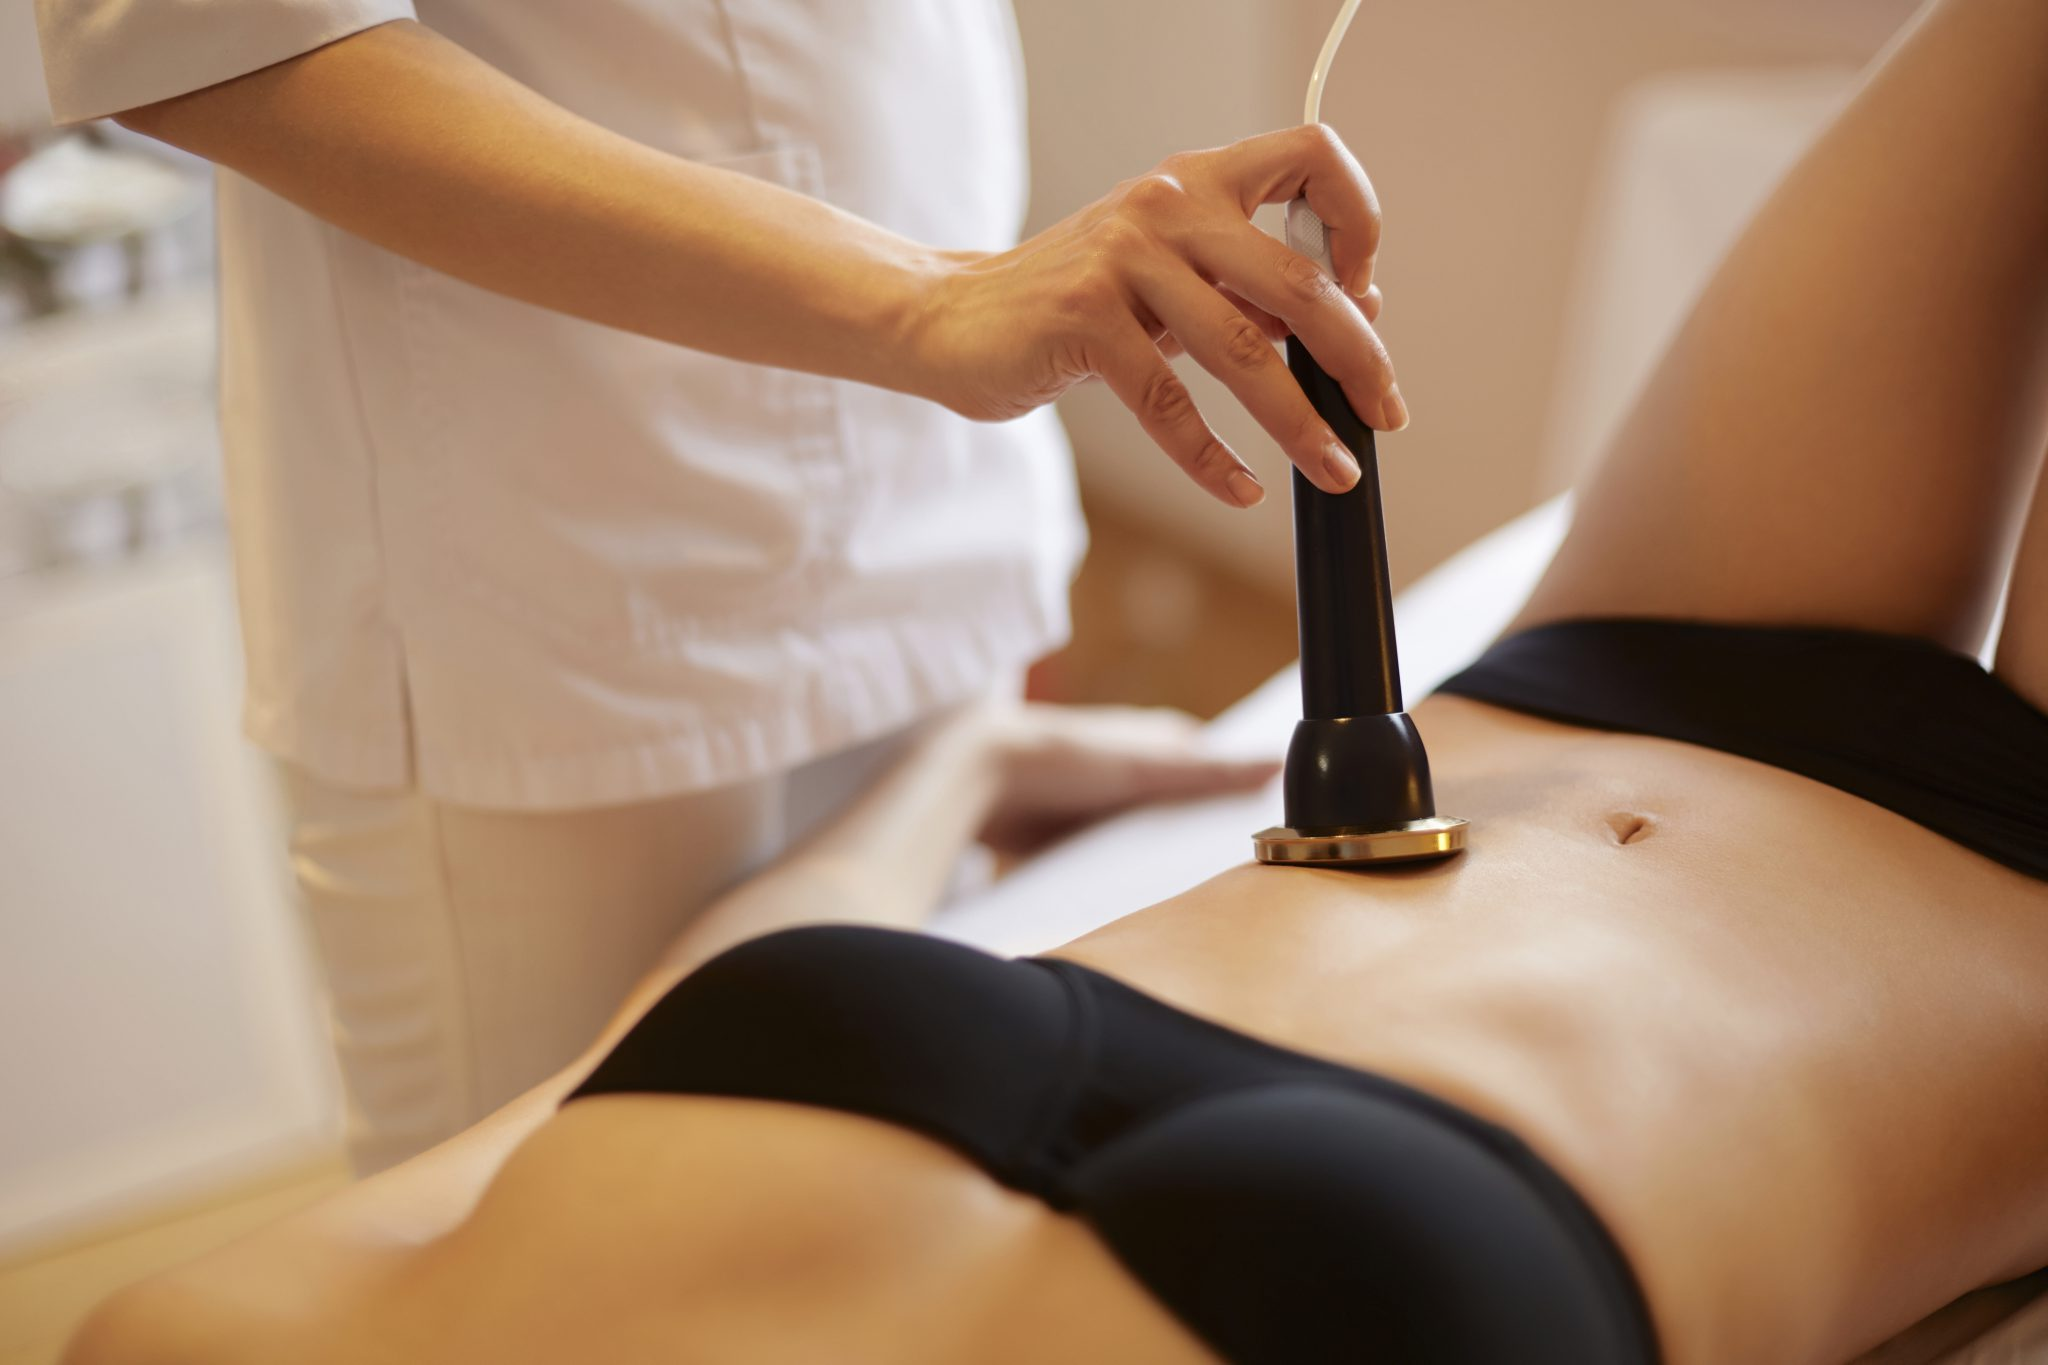 Laser Lipo Training Courses – Learn How To Non-Surgically Remove Fat